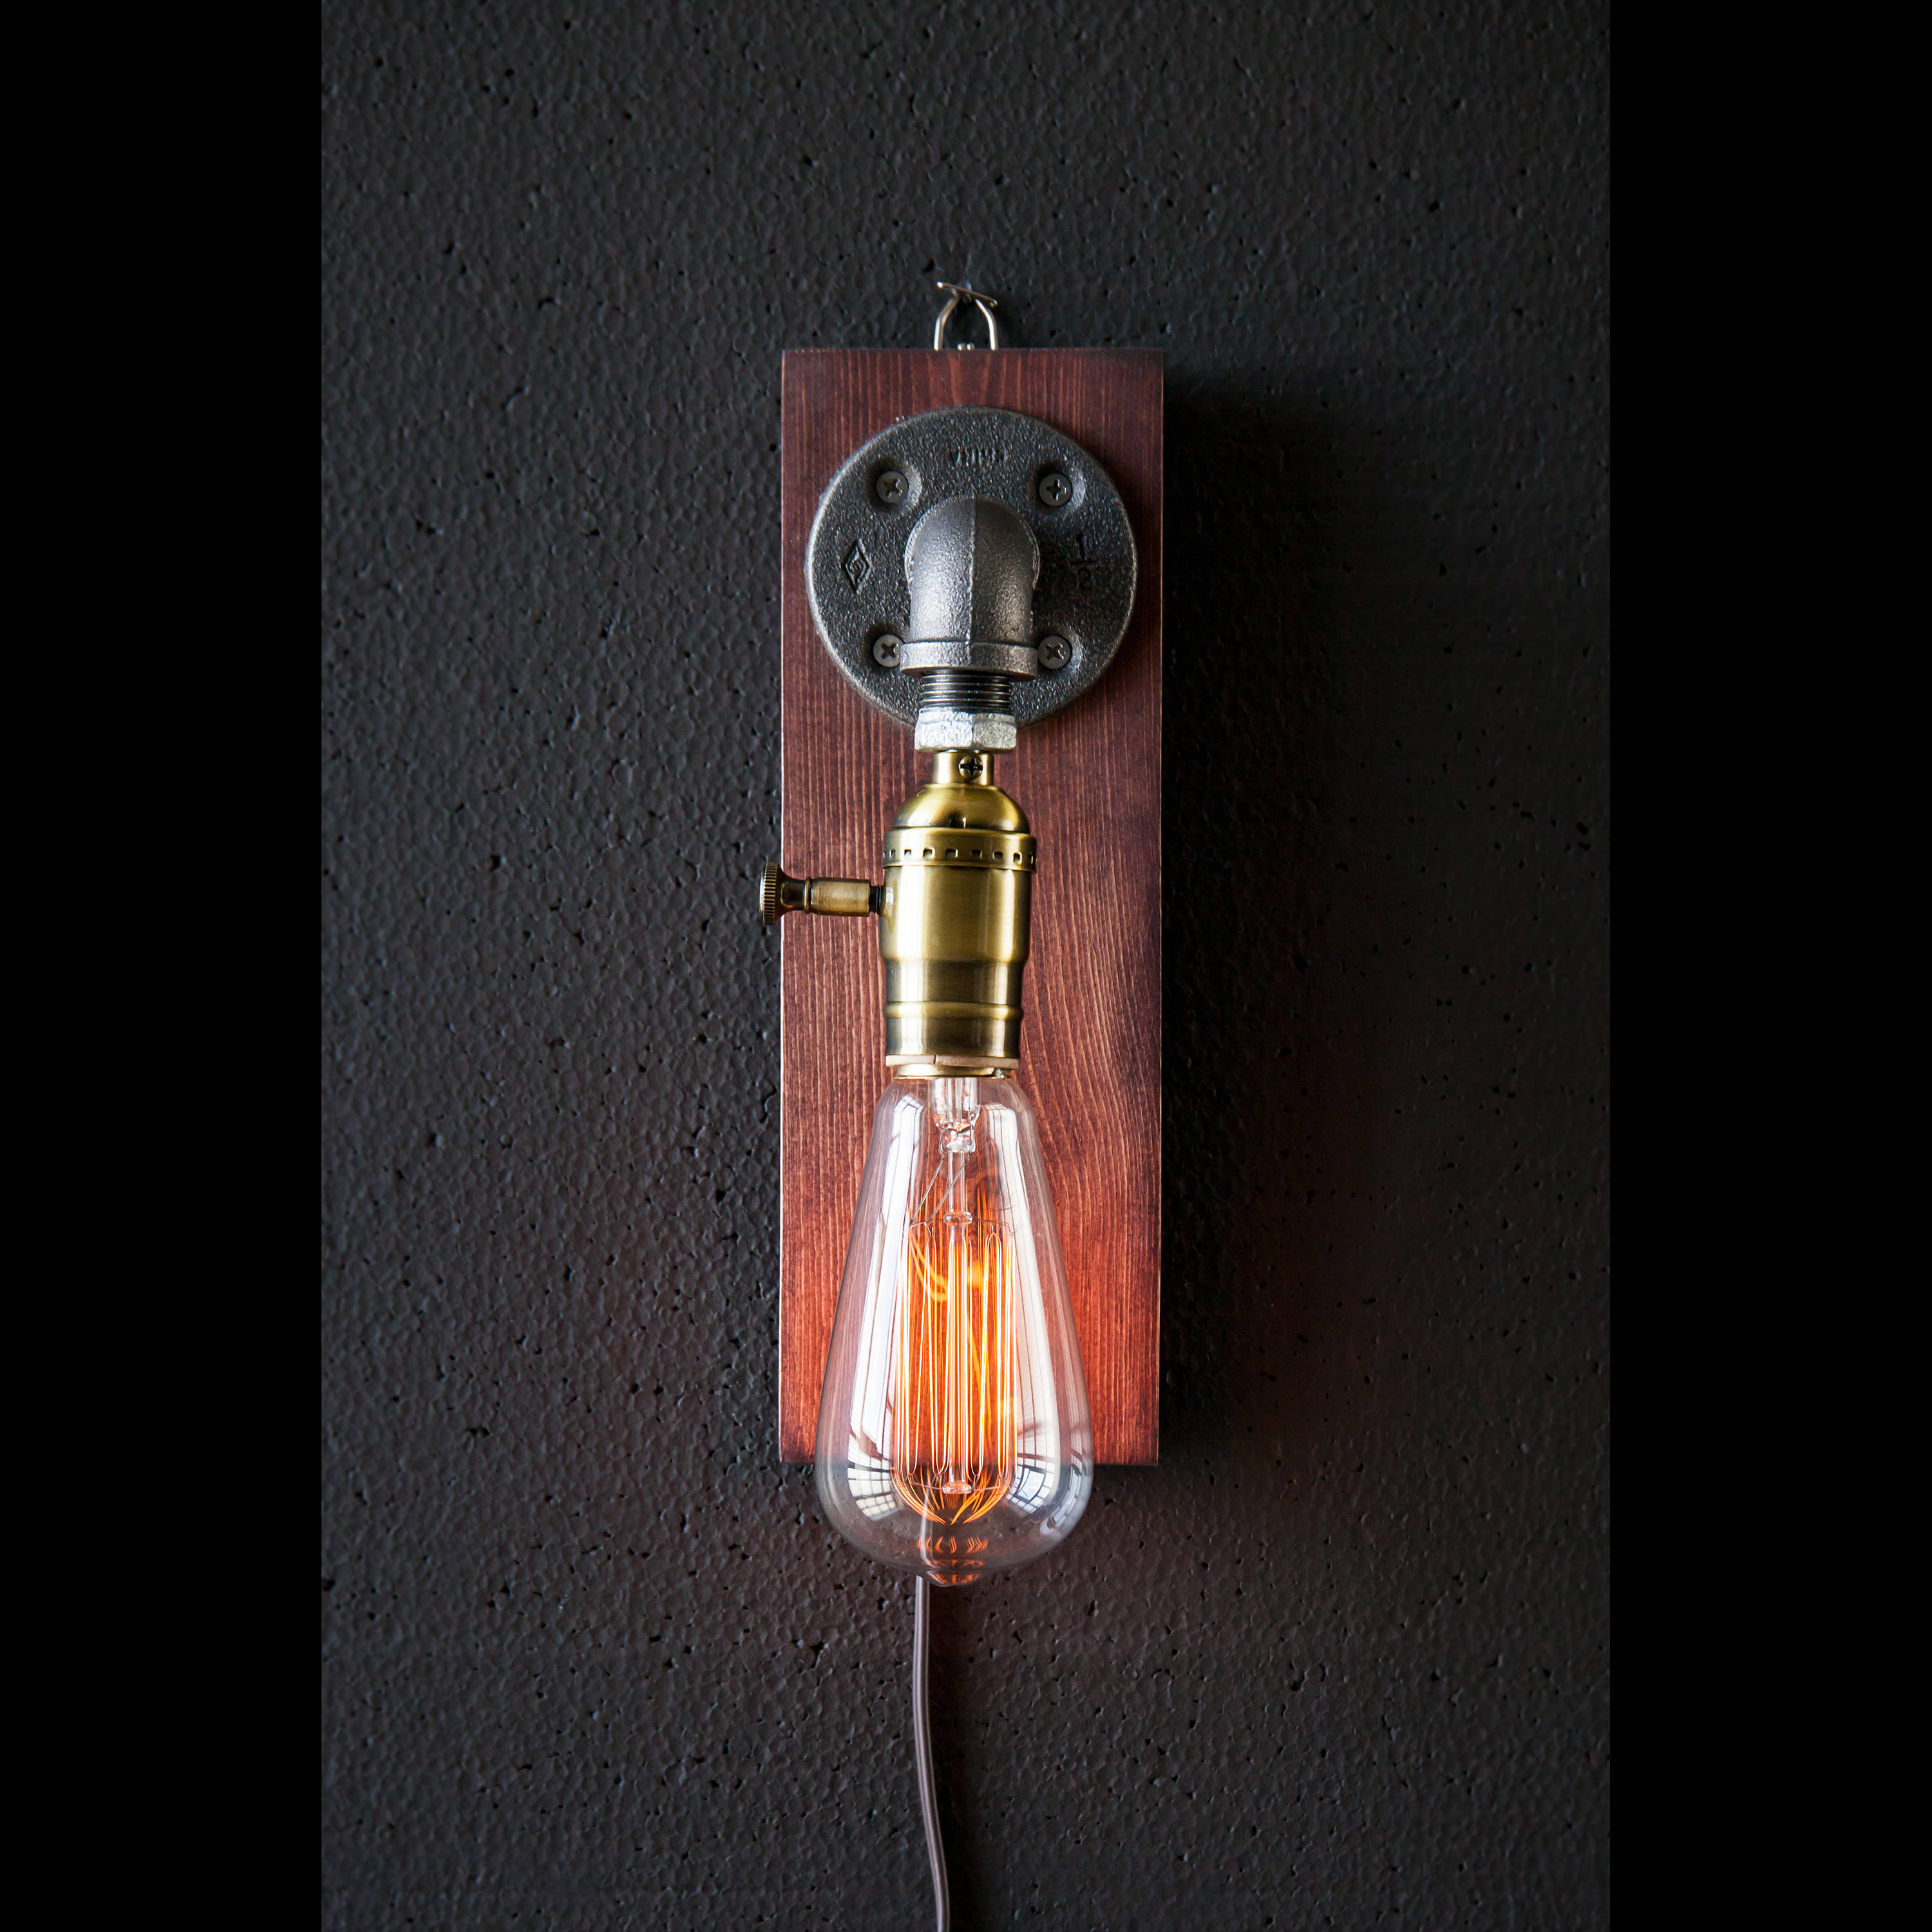 Industrial Lighting Lighting Rustic Light Steampunk: Plug In Wall Sconce Lamp-Rustic Home Decor-Sconce Lamp